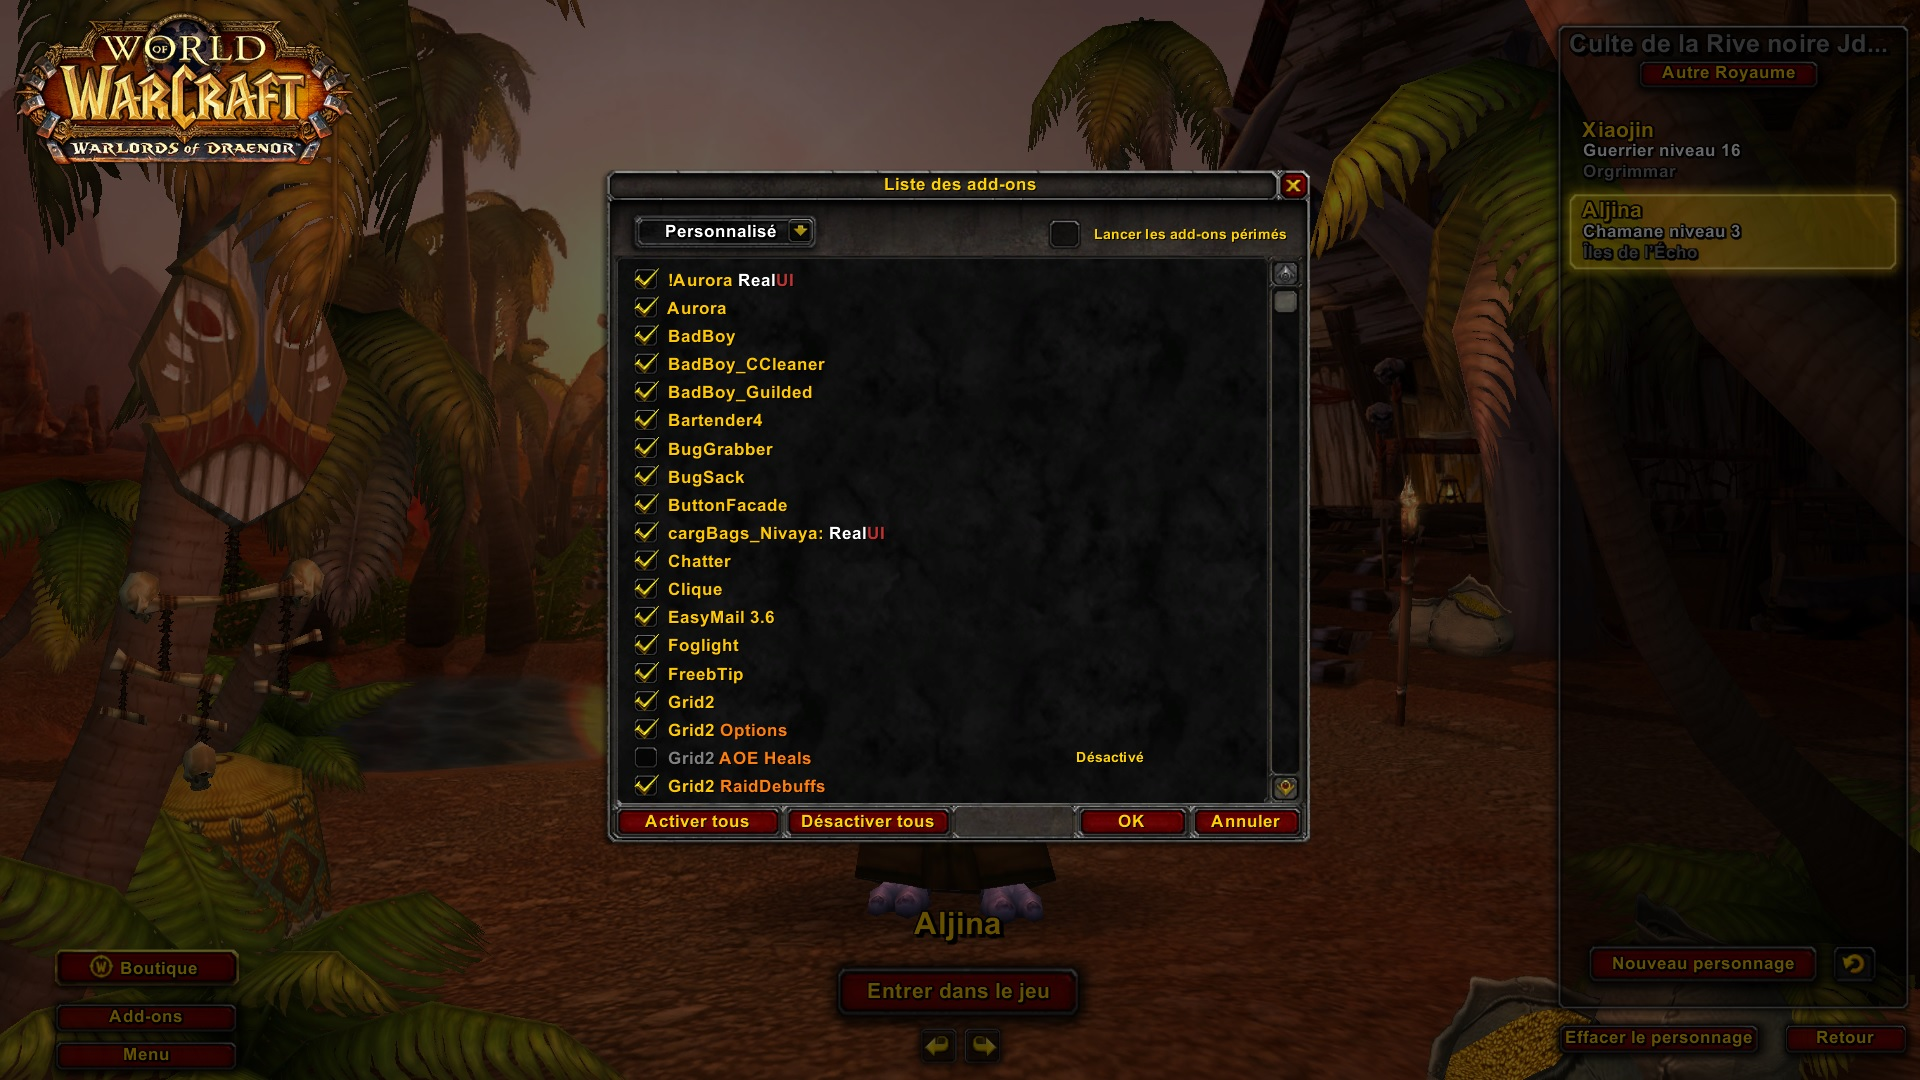 Broker oQueue - Addons - World of Warcraft - CurseForge